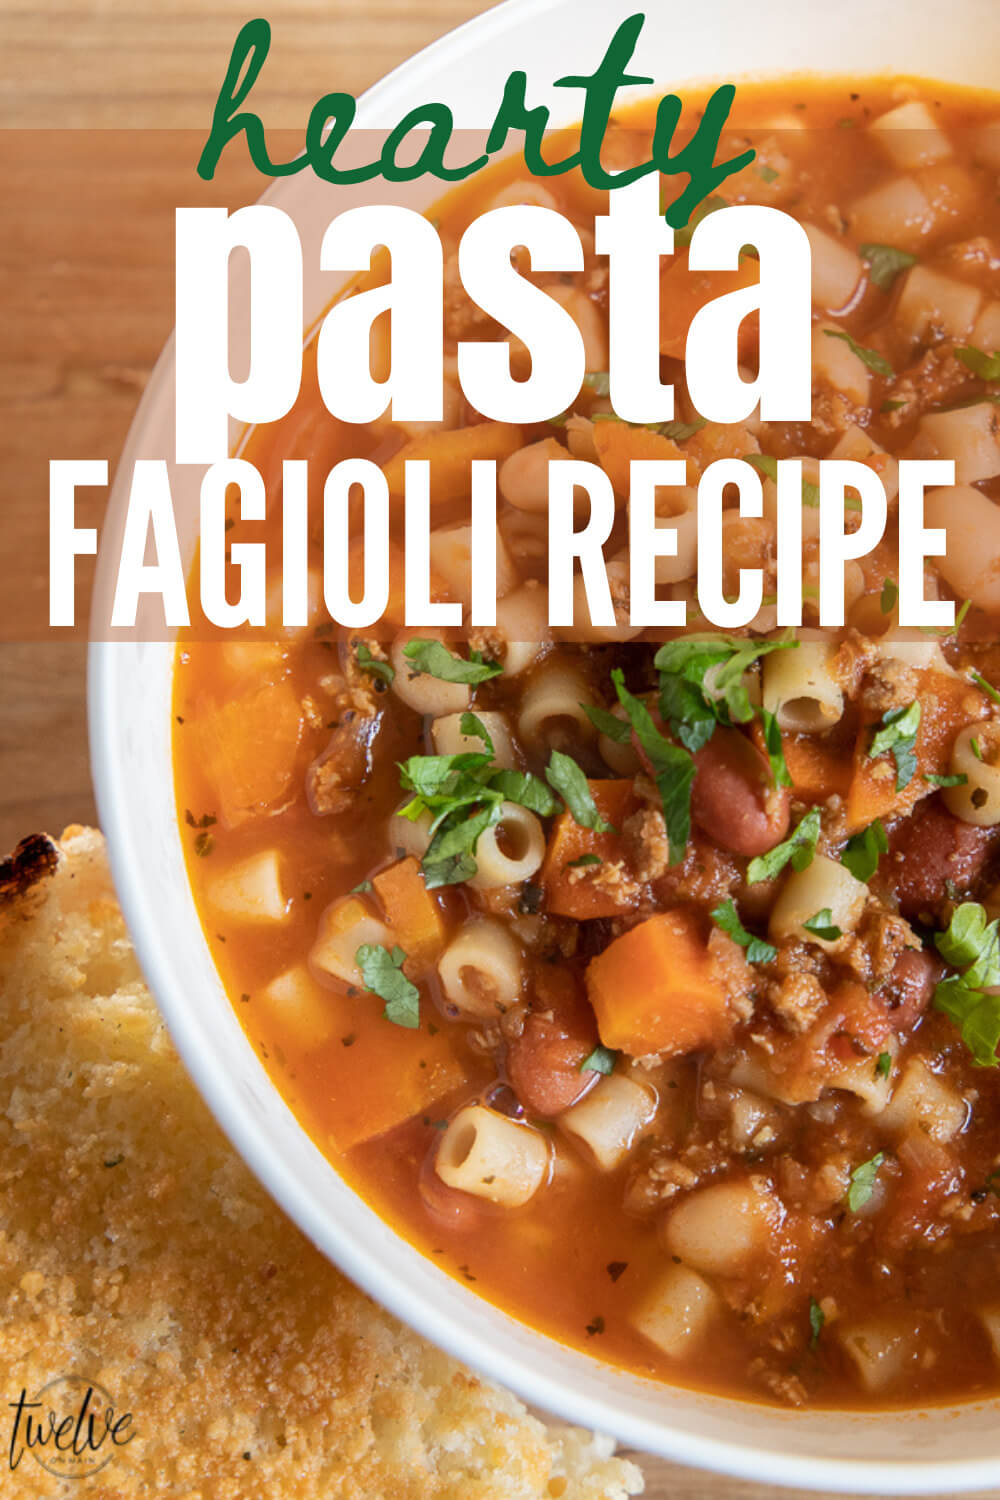 Try my amazing hearty and flavorful pasta fagioli recipe! This is healthy, and has so many yummy textures and the flavor is perfect!